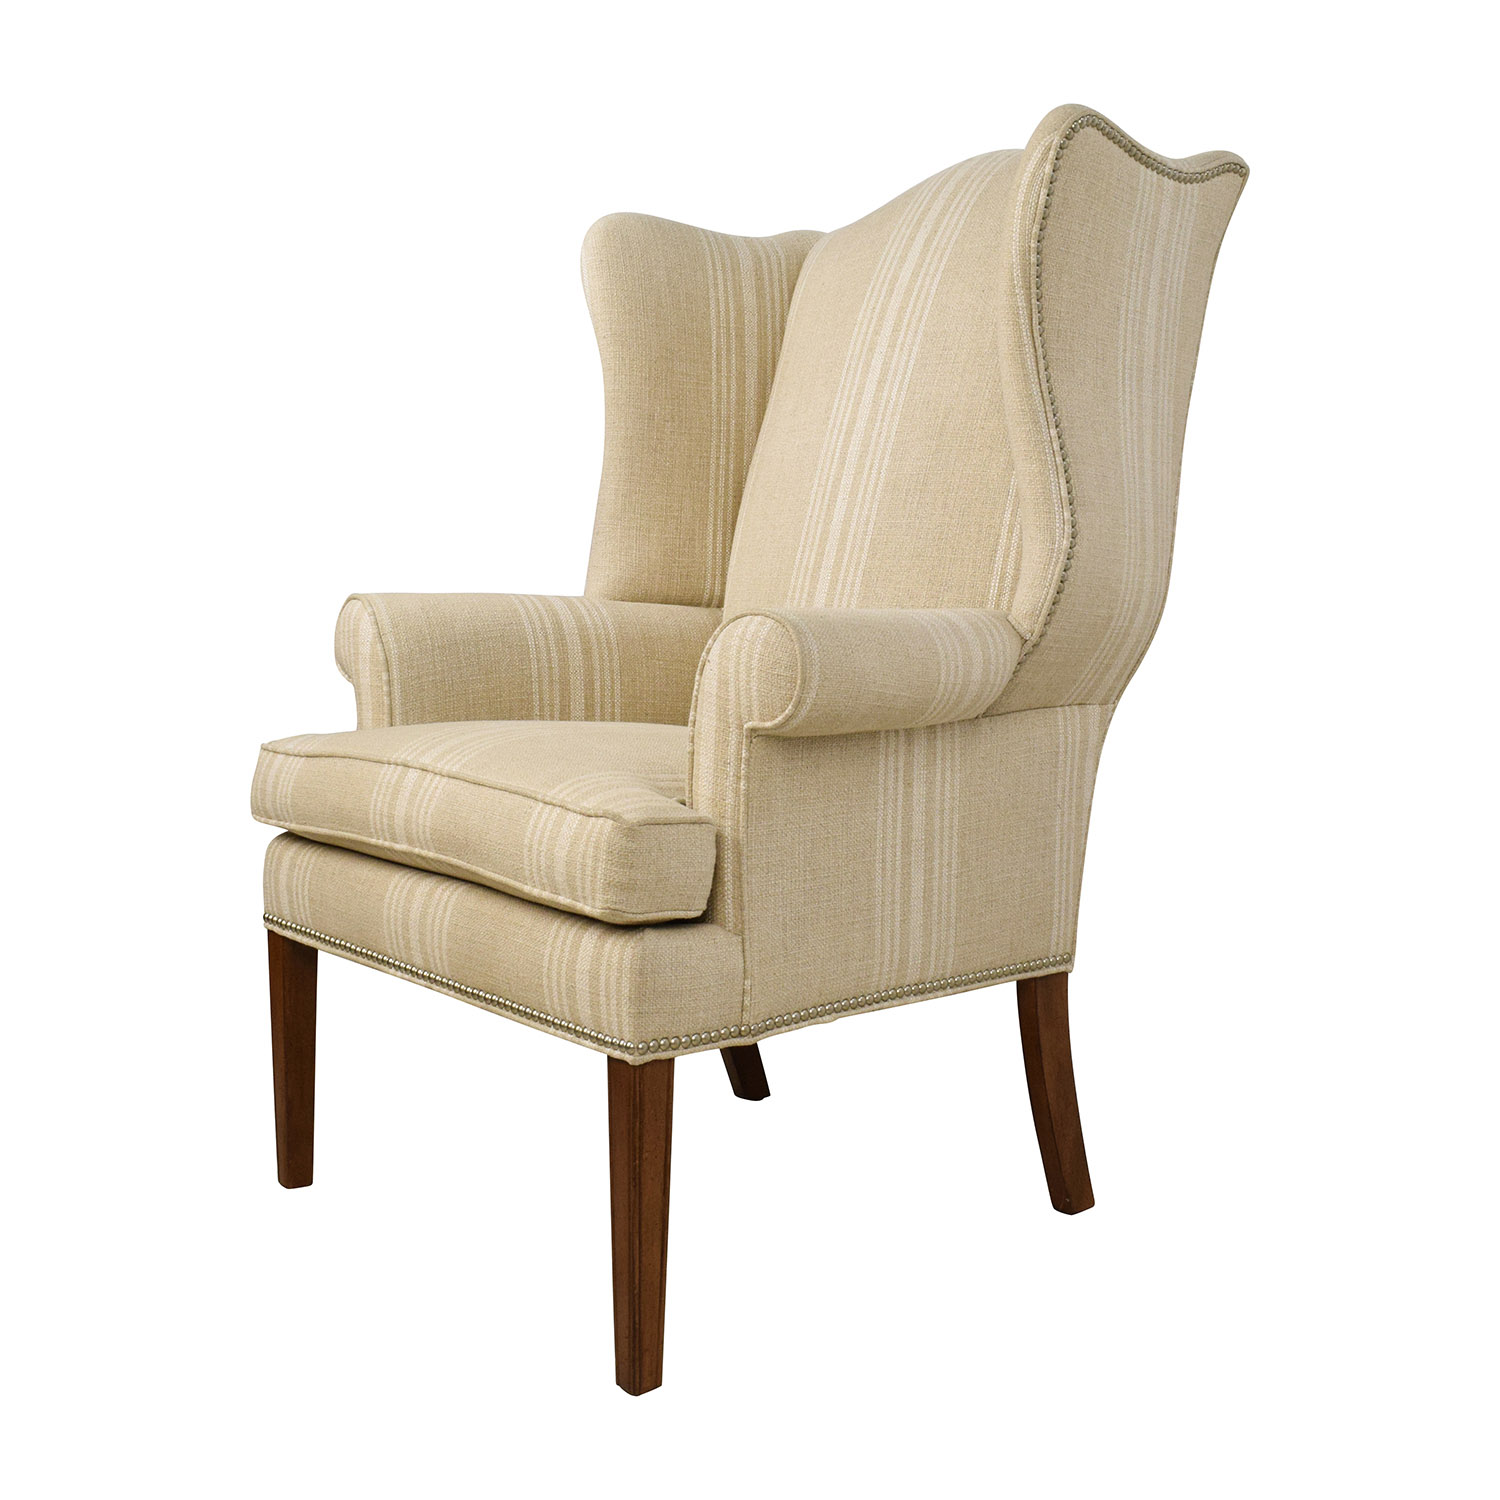 shop ethan allen skylar stripped wing chair ethan allen chairs